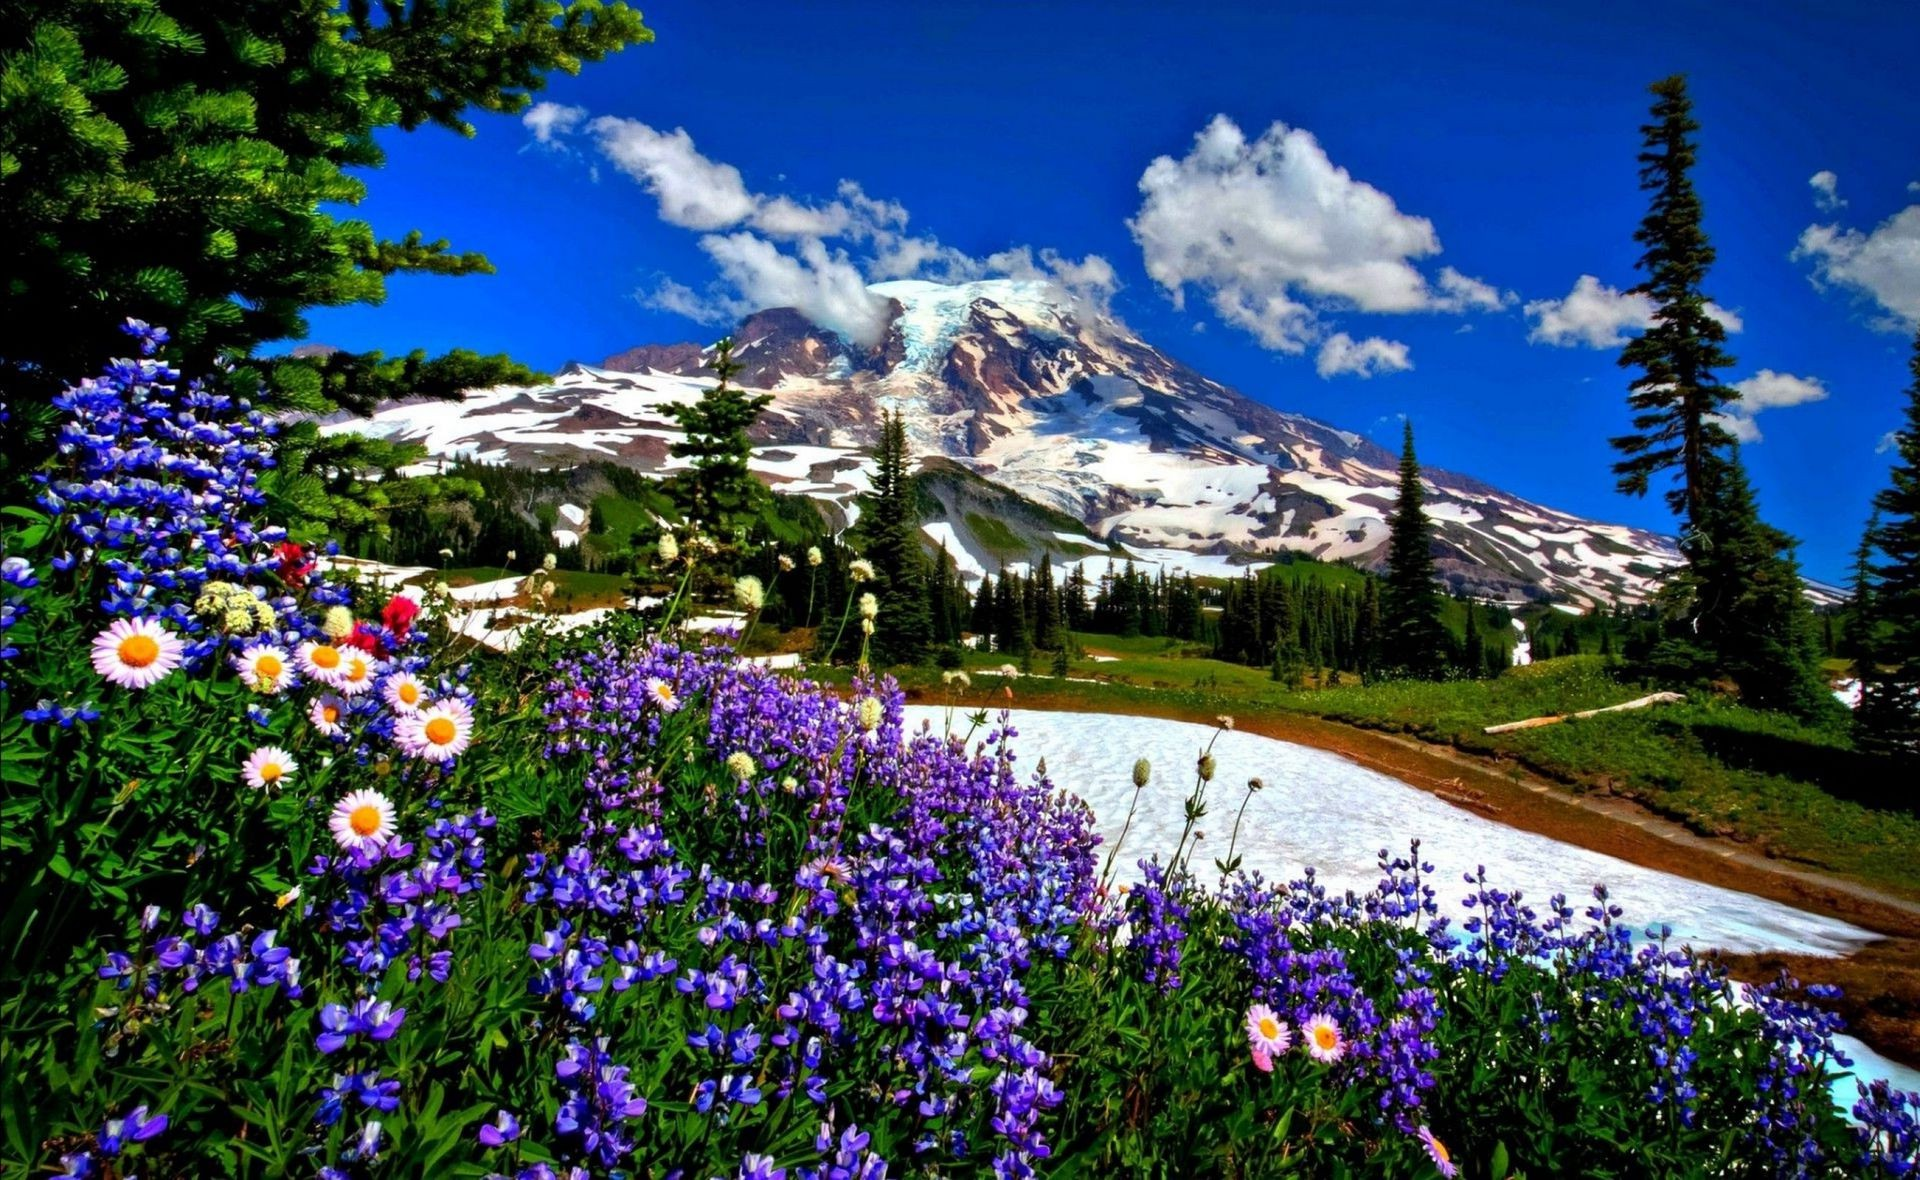 Full Hd Wallpapers Fall Nature Landscape Road Mountain Flowers Snow Phone Wallpapers